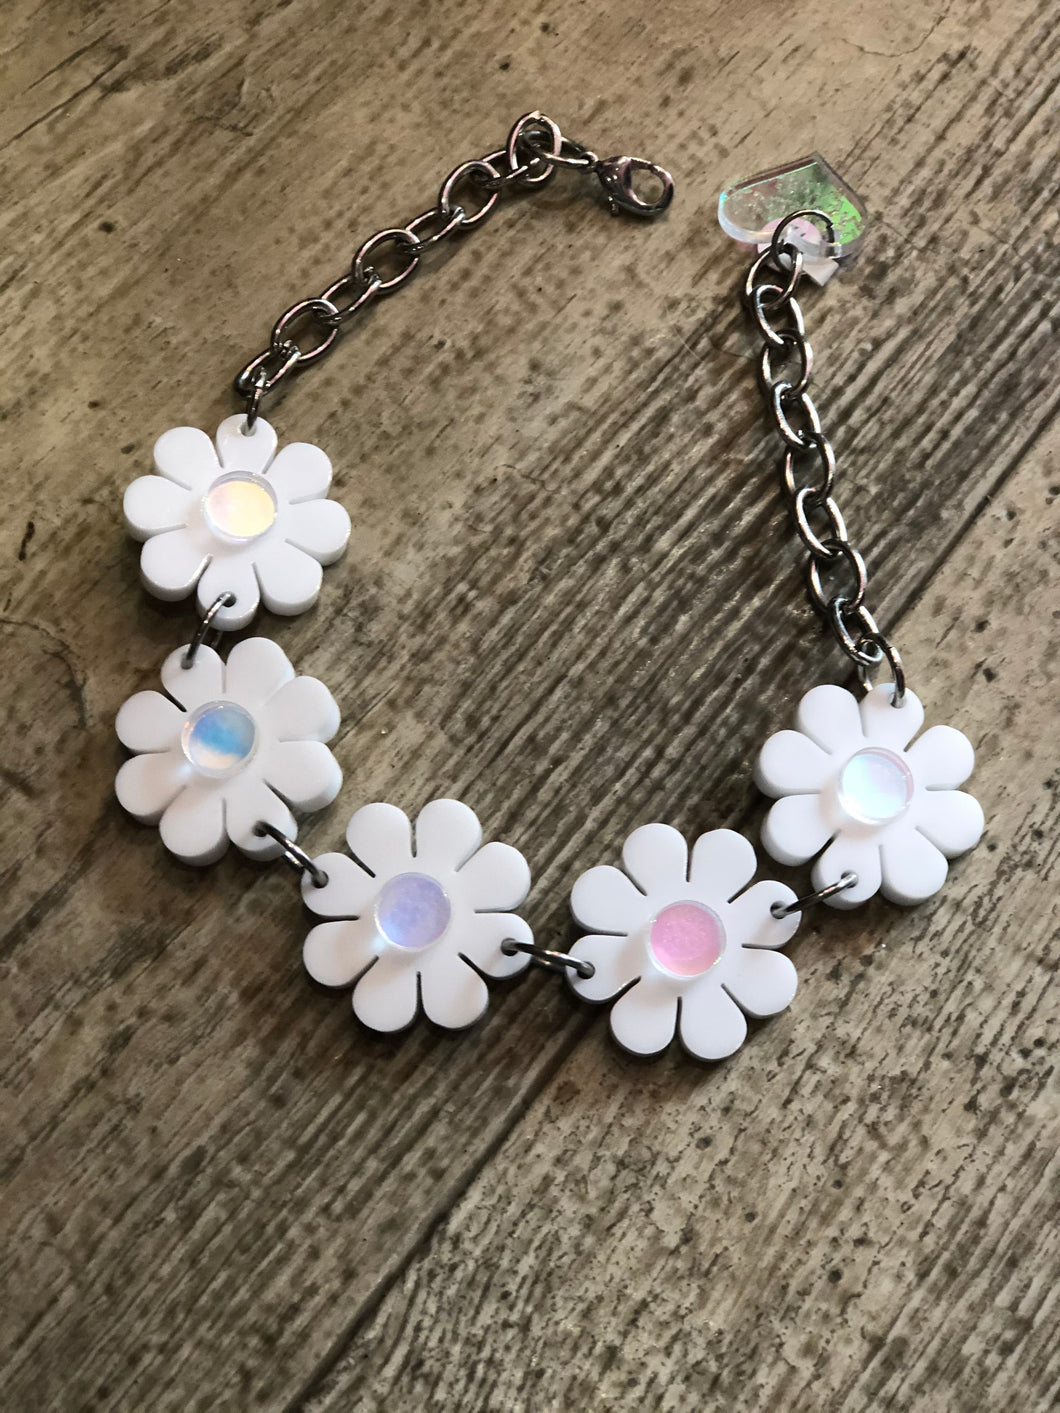 White Holo Flower Power Choker by Marina Fini | Necklaces - 80s 90s Retro Vintage Clothing | Spark Pretty